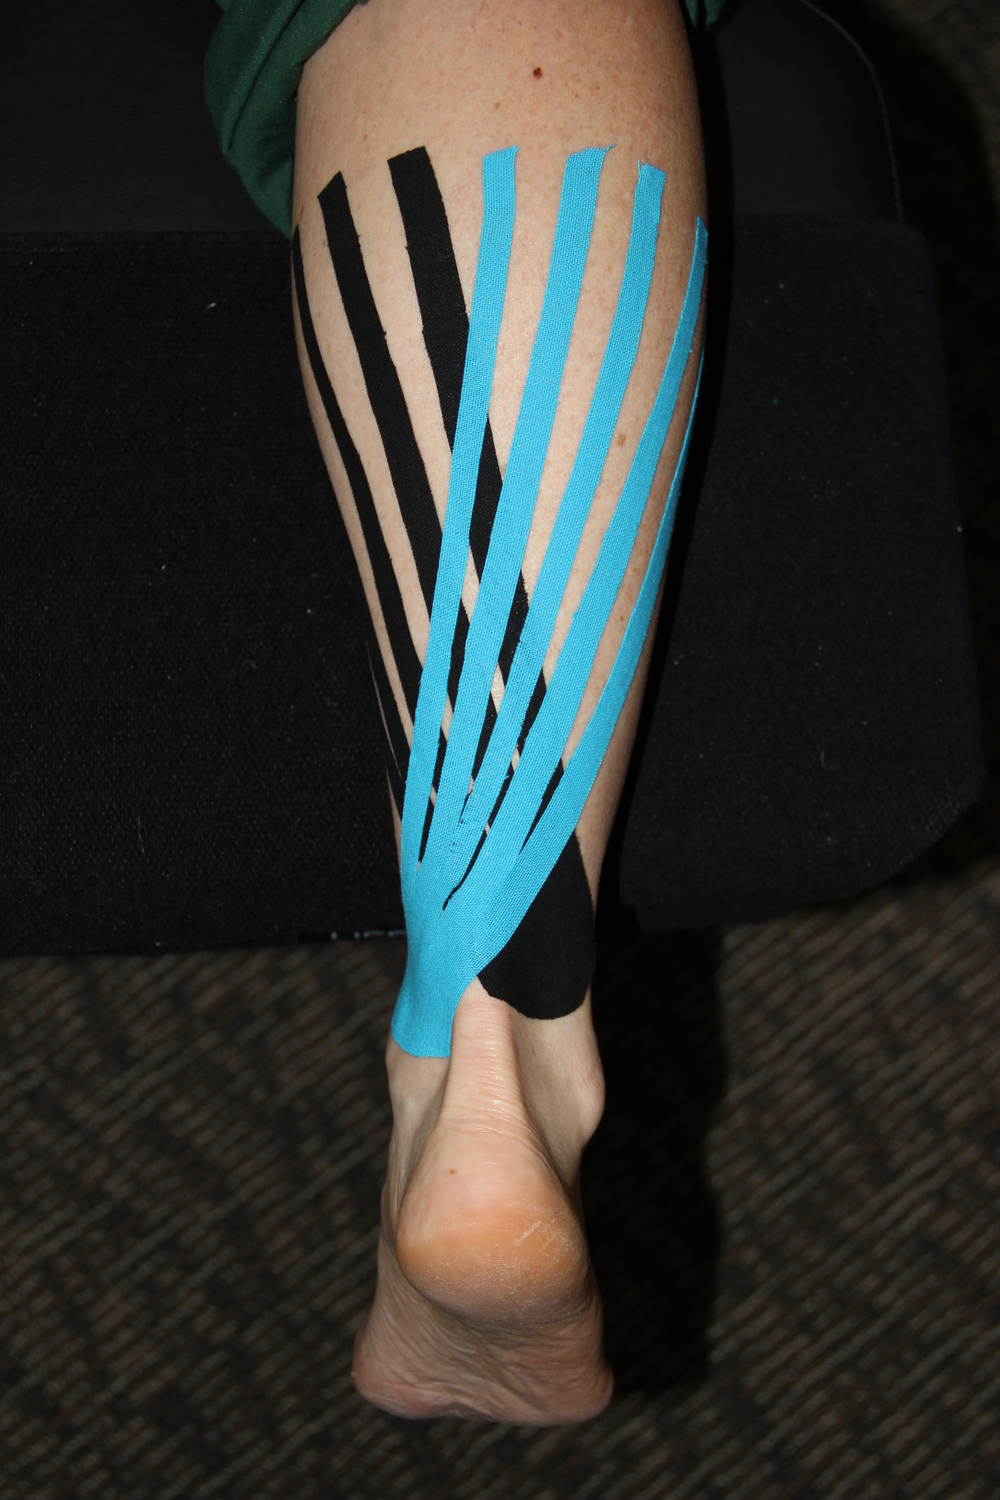 Taping of a strained calf muscle